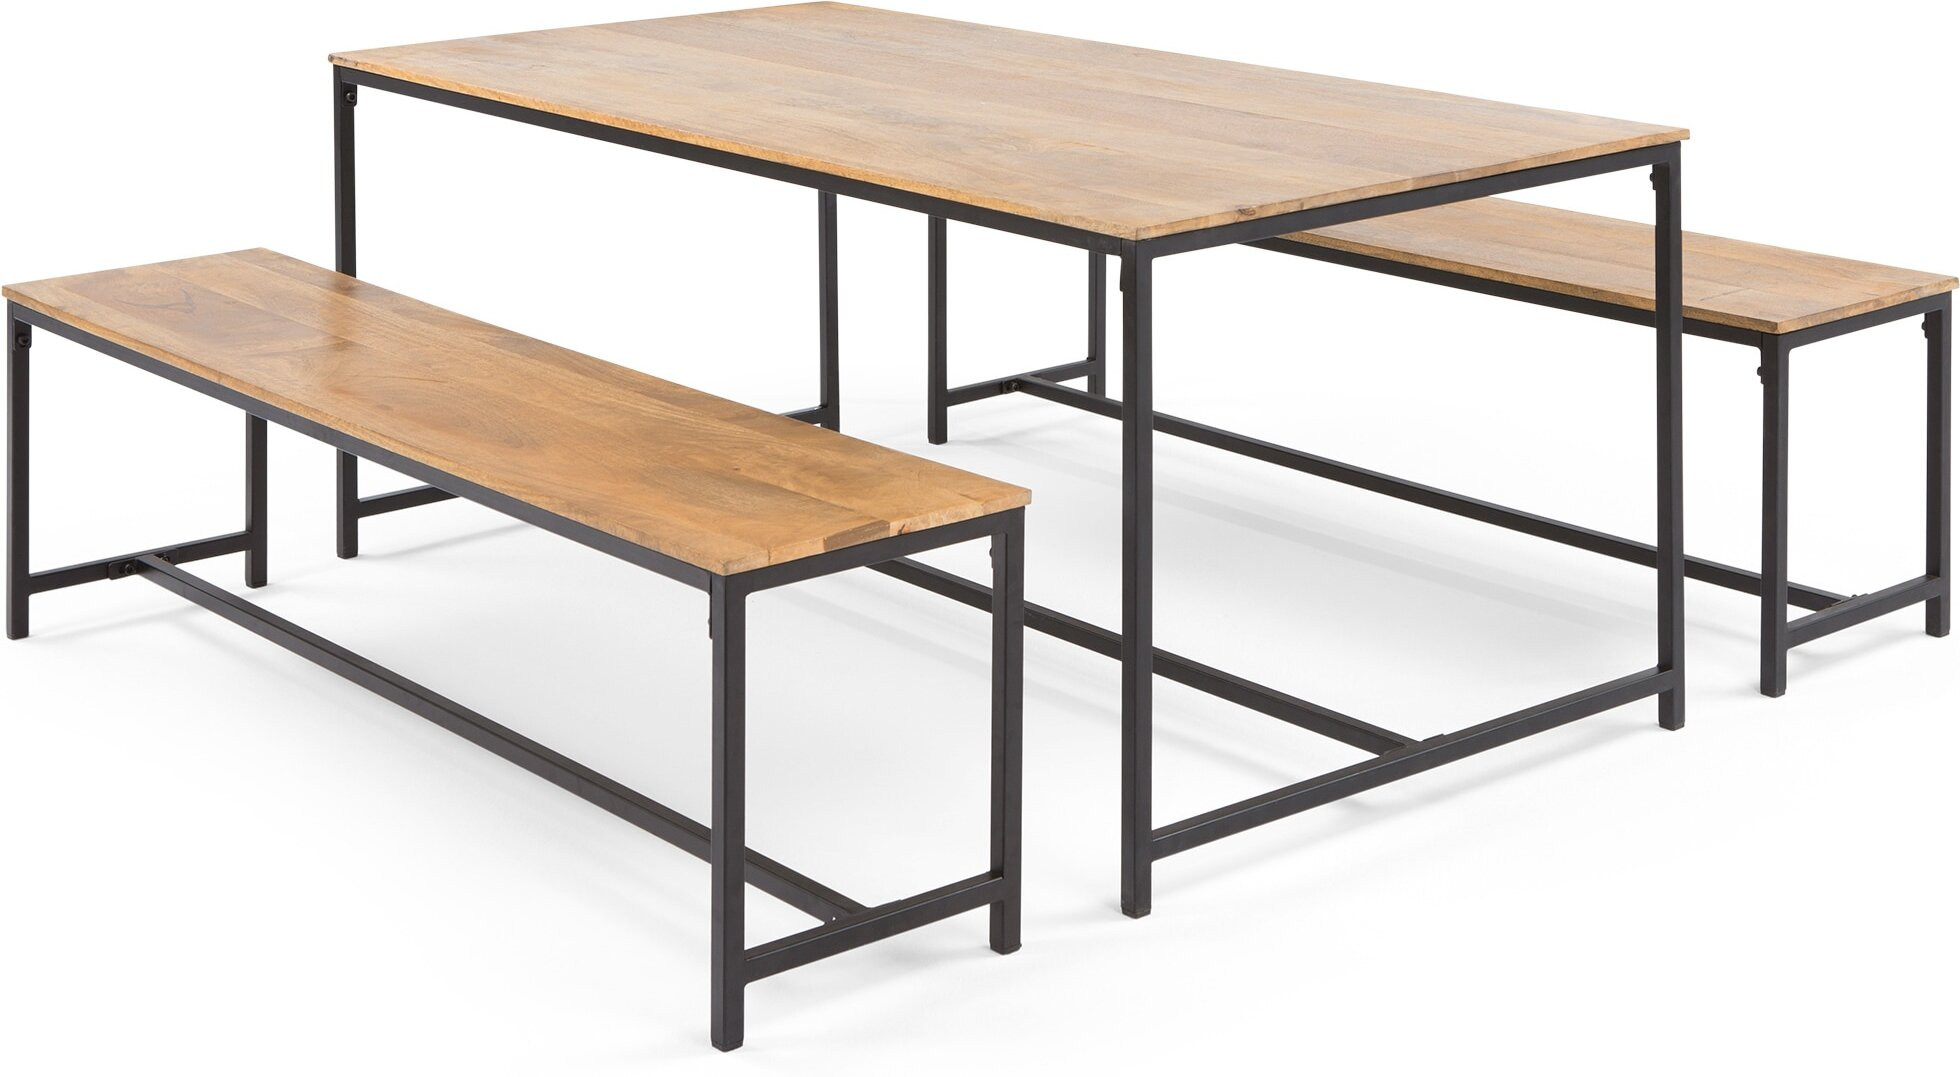 Lomond Dining Table Set Mango Wood and Black